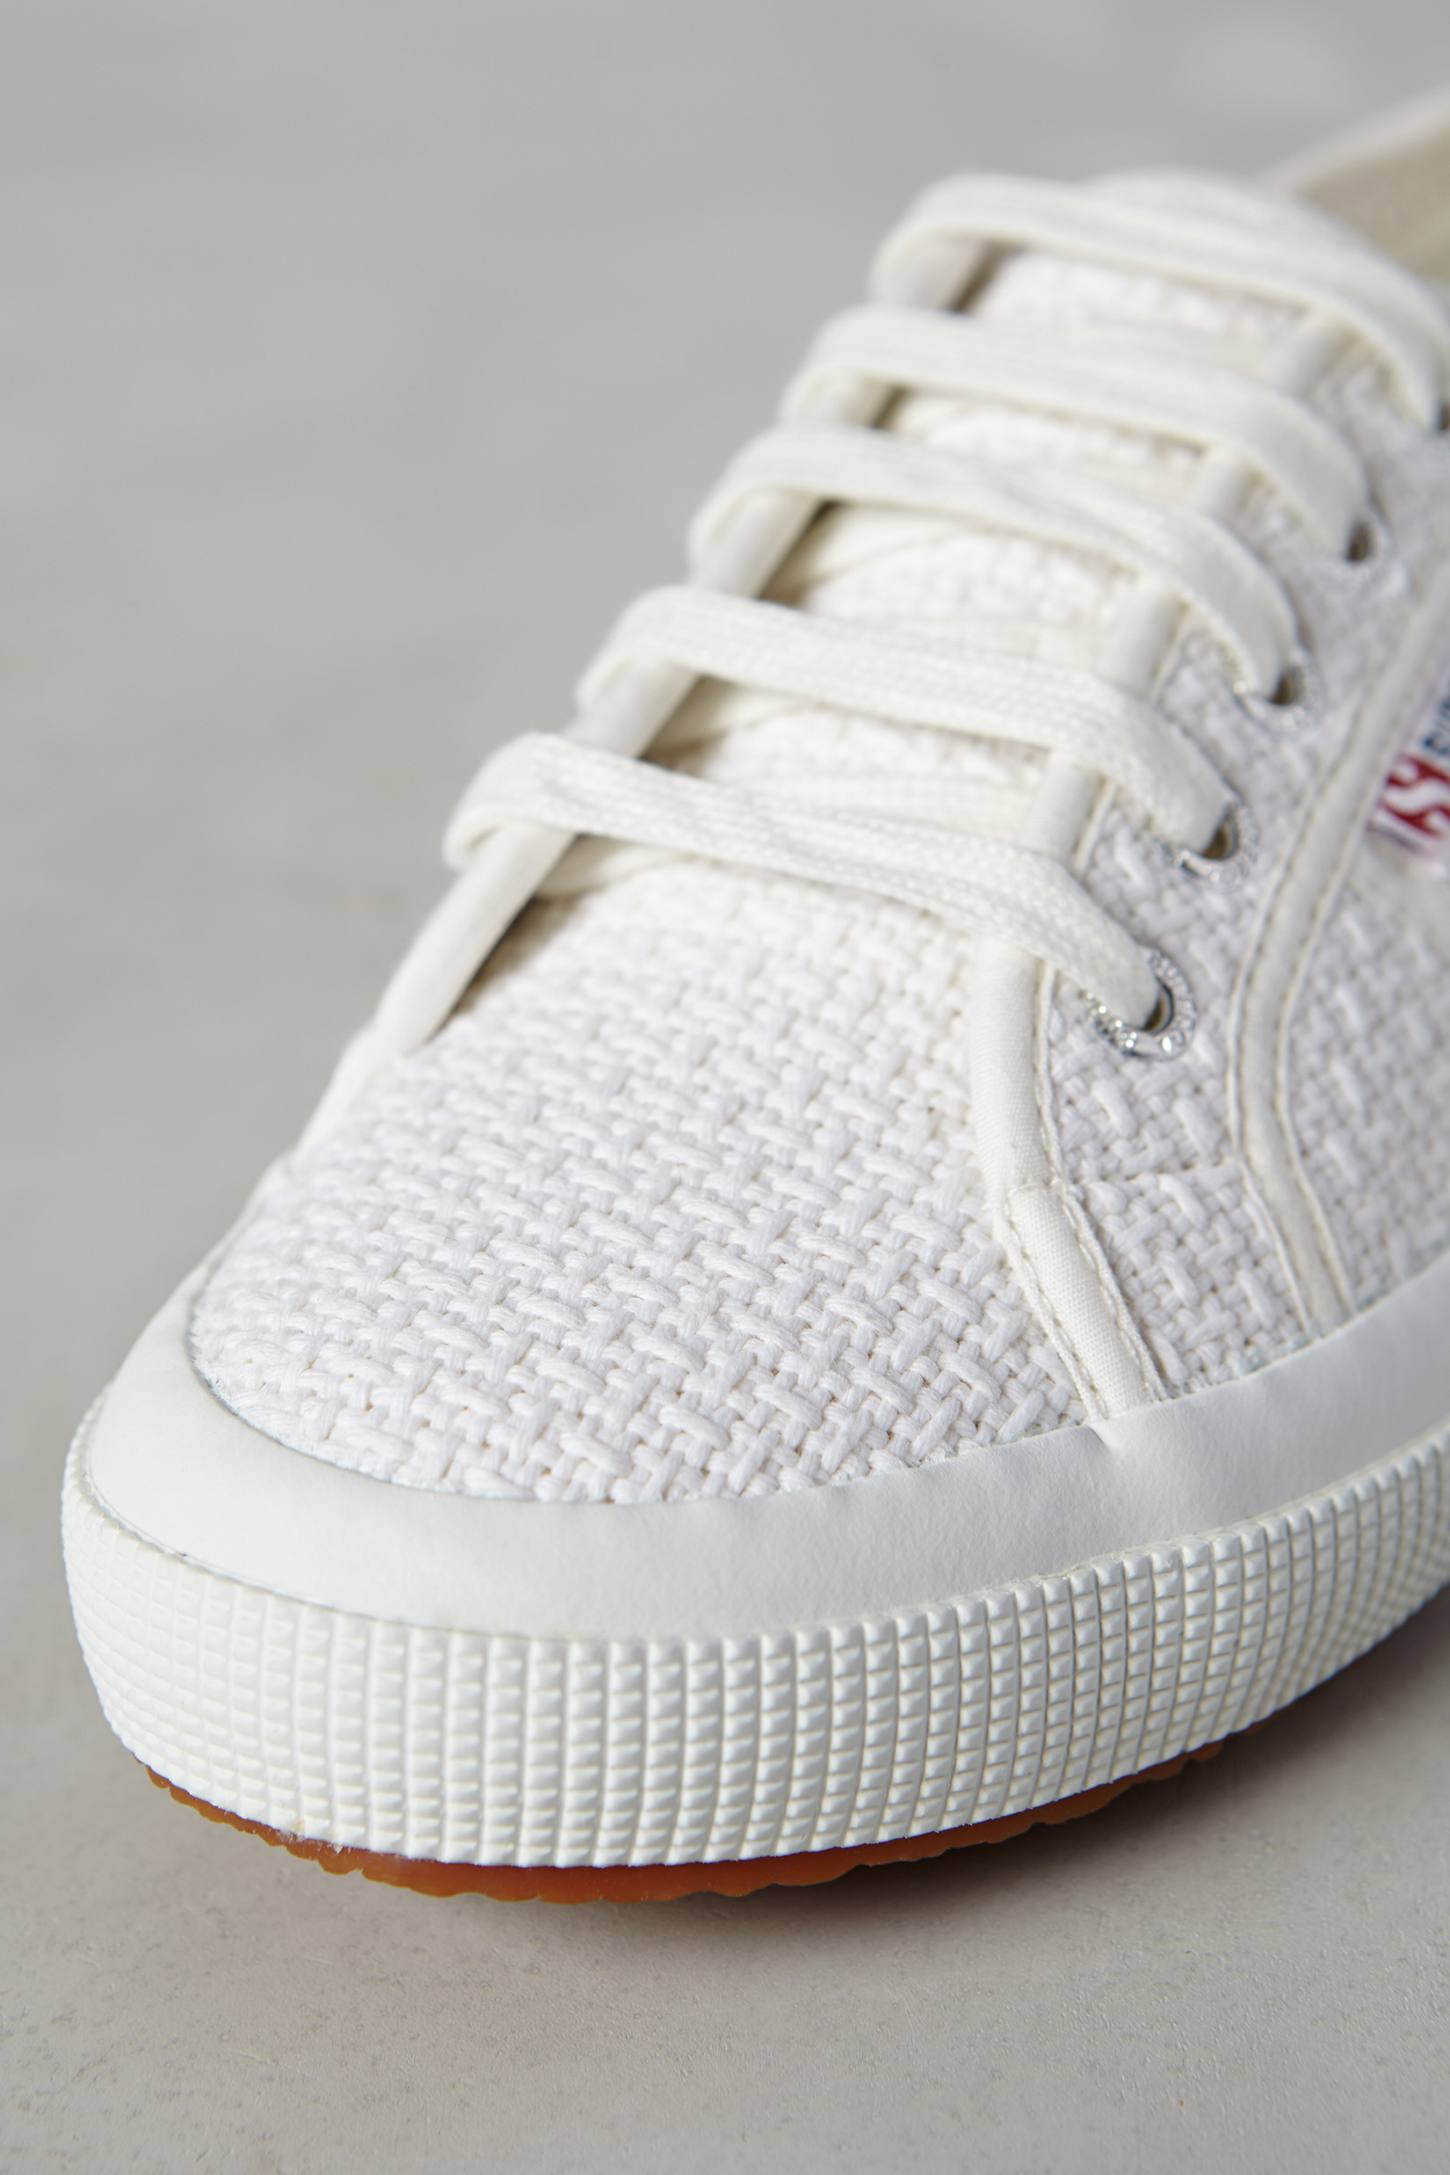 Lyst Superga Crochet Sneakers in White